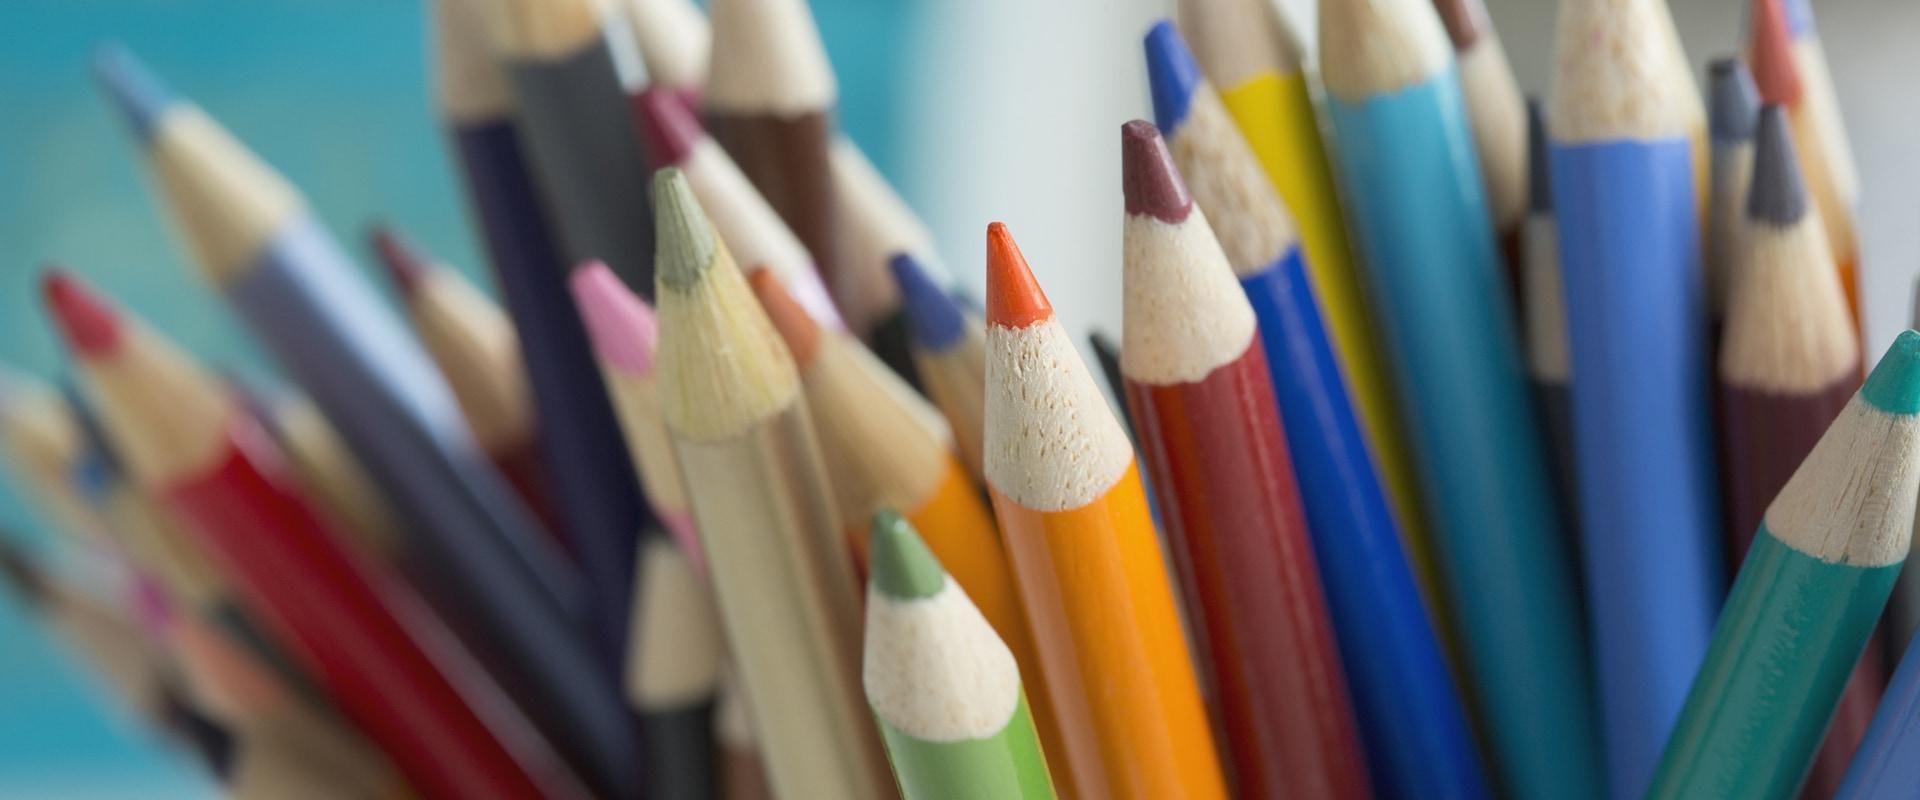 Image of colored pencils.